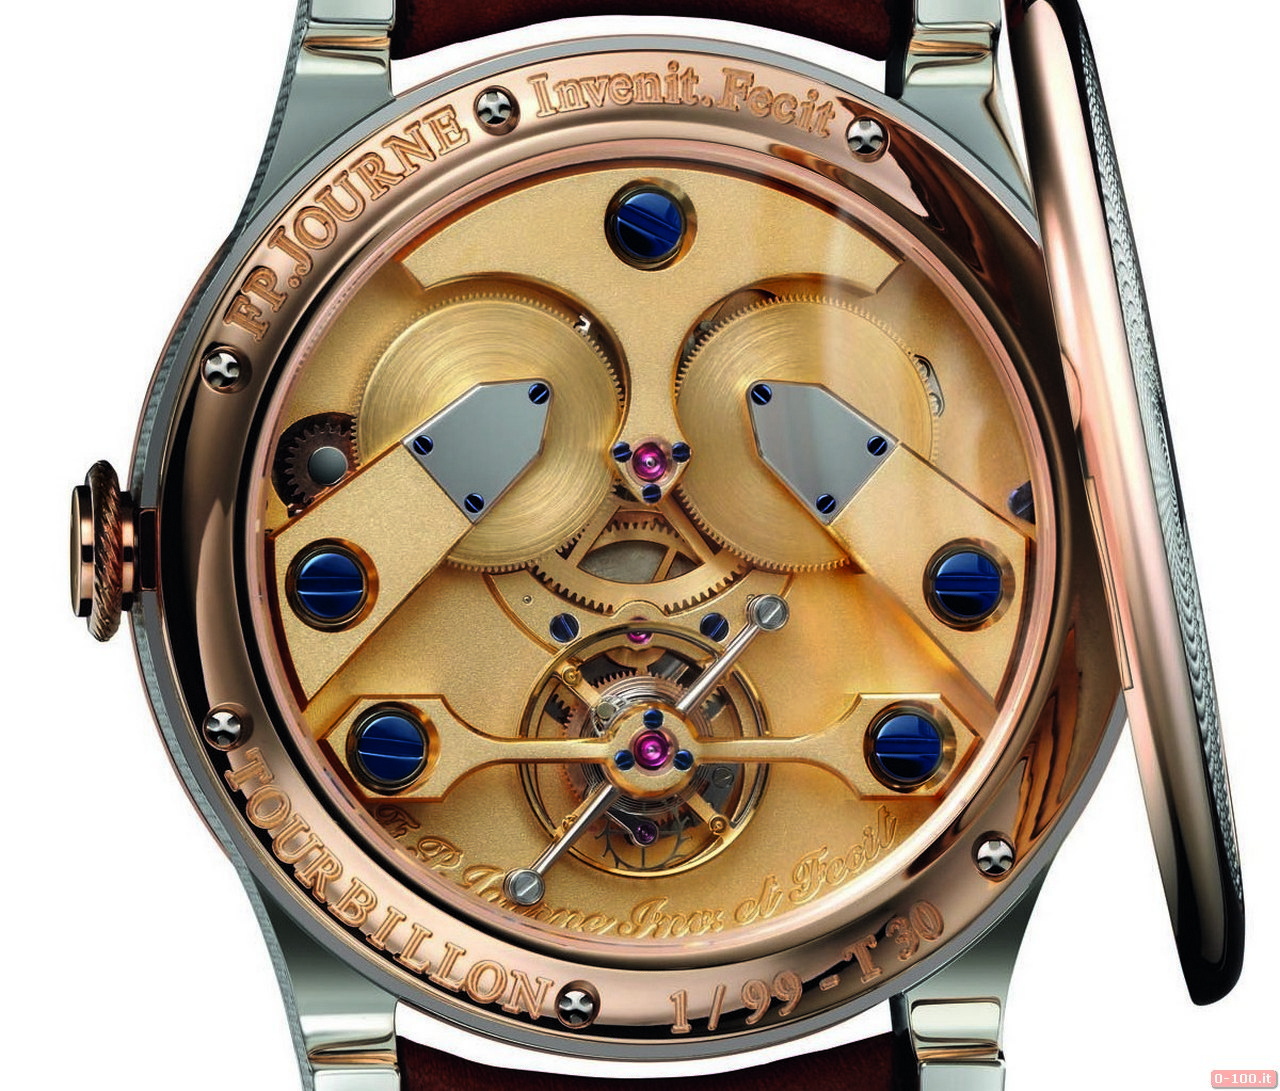 anniversary-edition-2013-of-the-first-pocket-watch-with-tourbillon-by-francois-paul-journe__0-1008